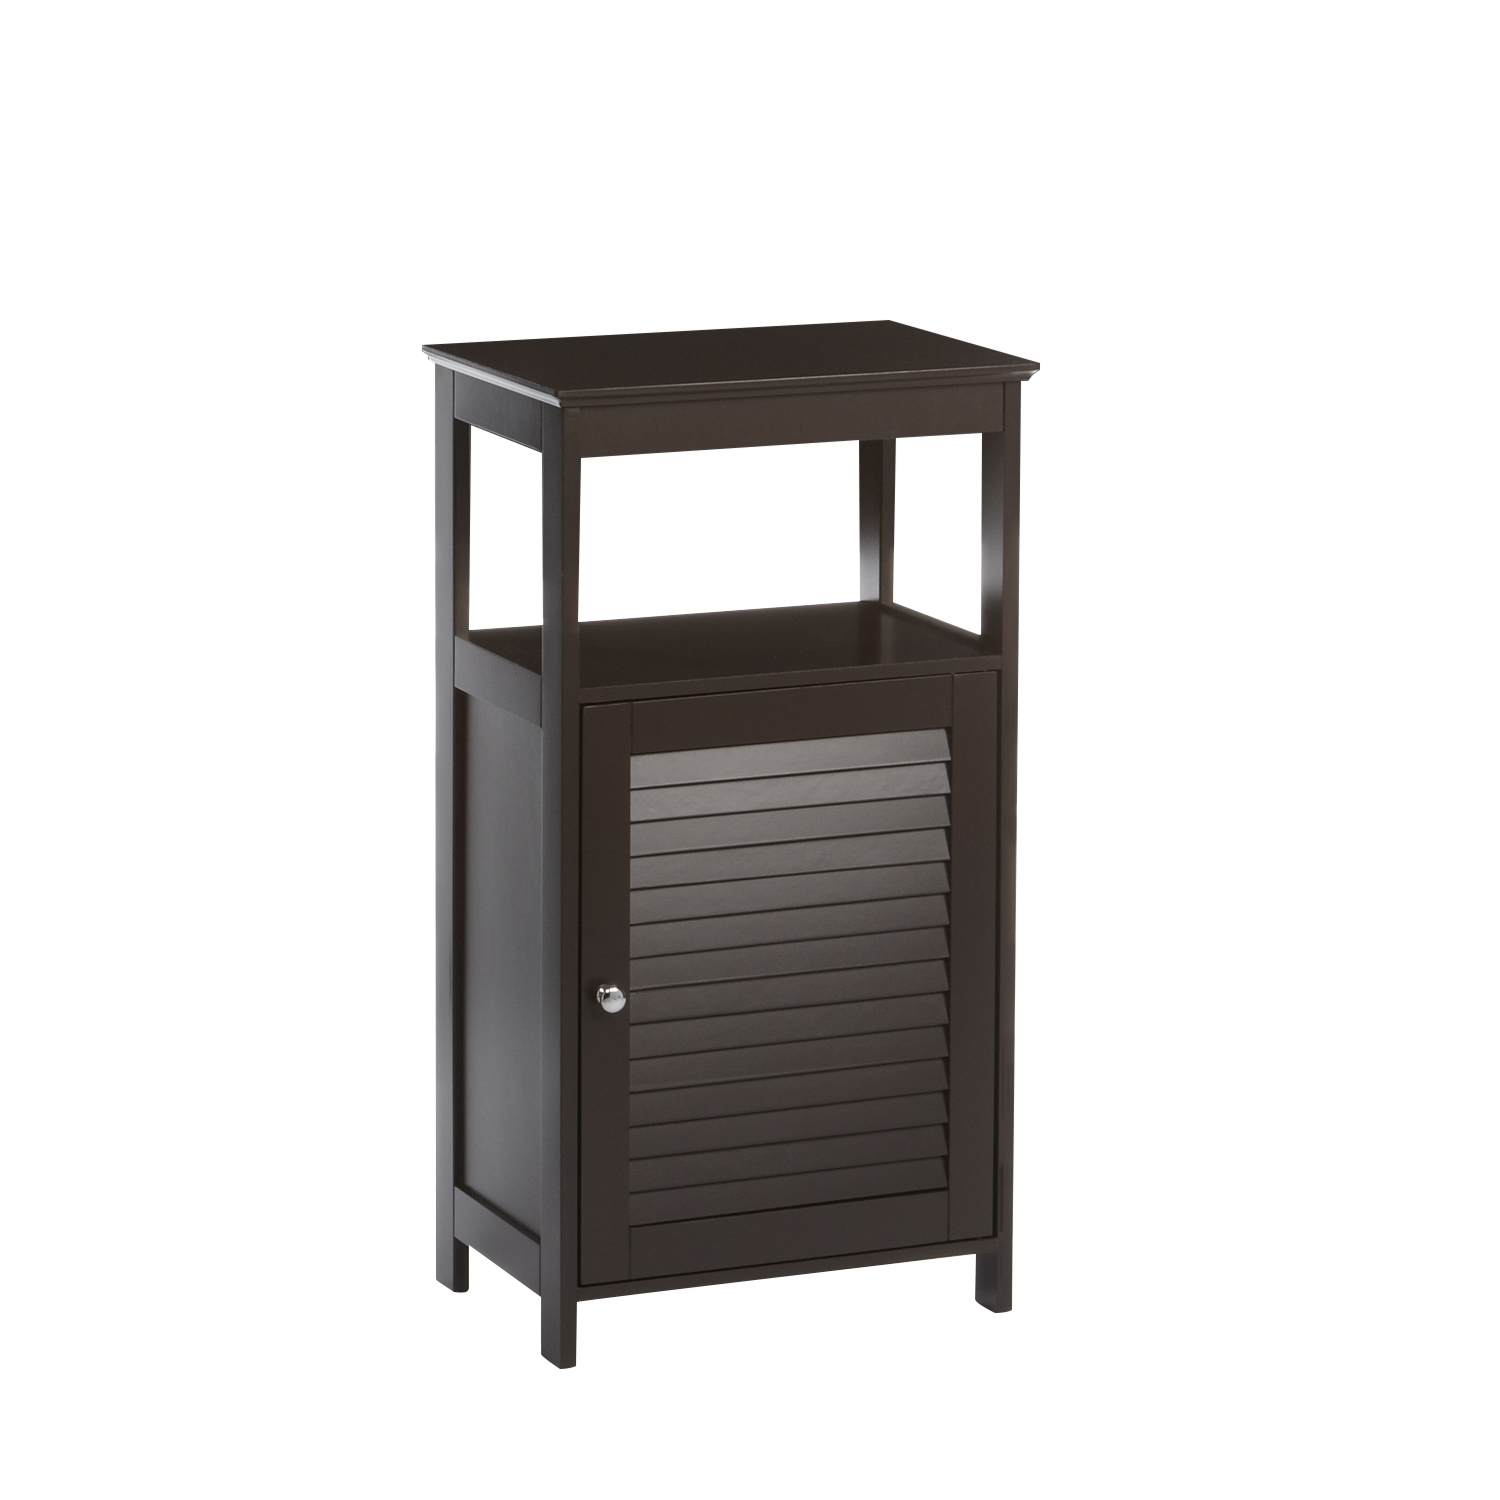 RiverRidge Home Ellsworth Collection - Single Door Floor Cabinet ...